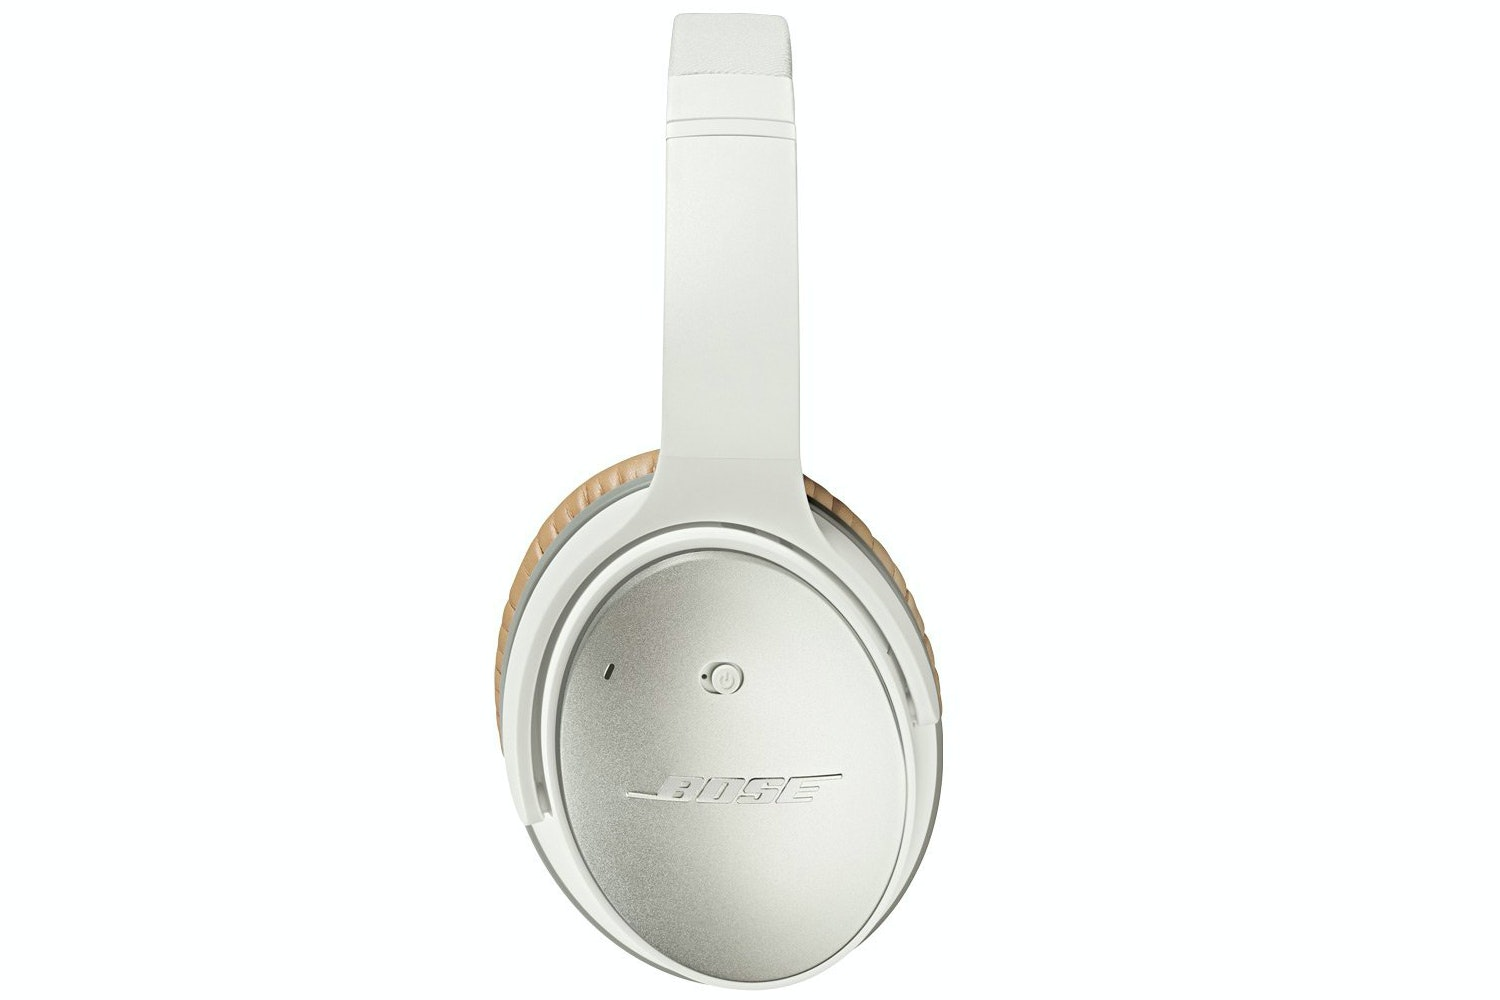 Bose Quiet Comfort 25 for Apple | White